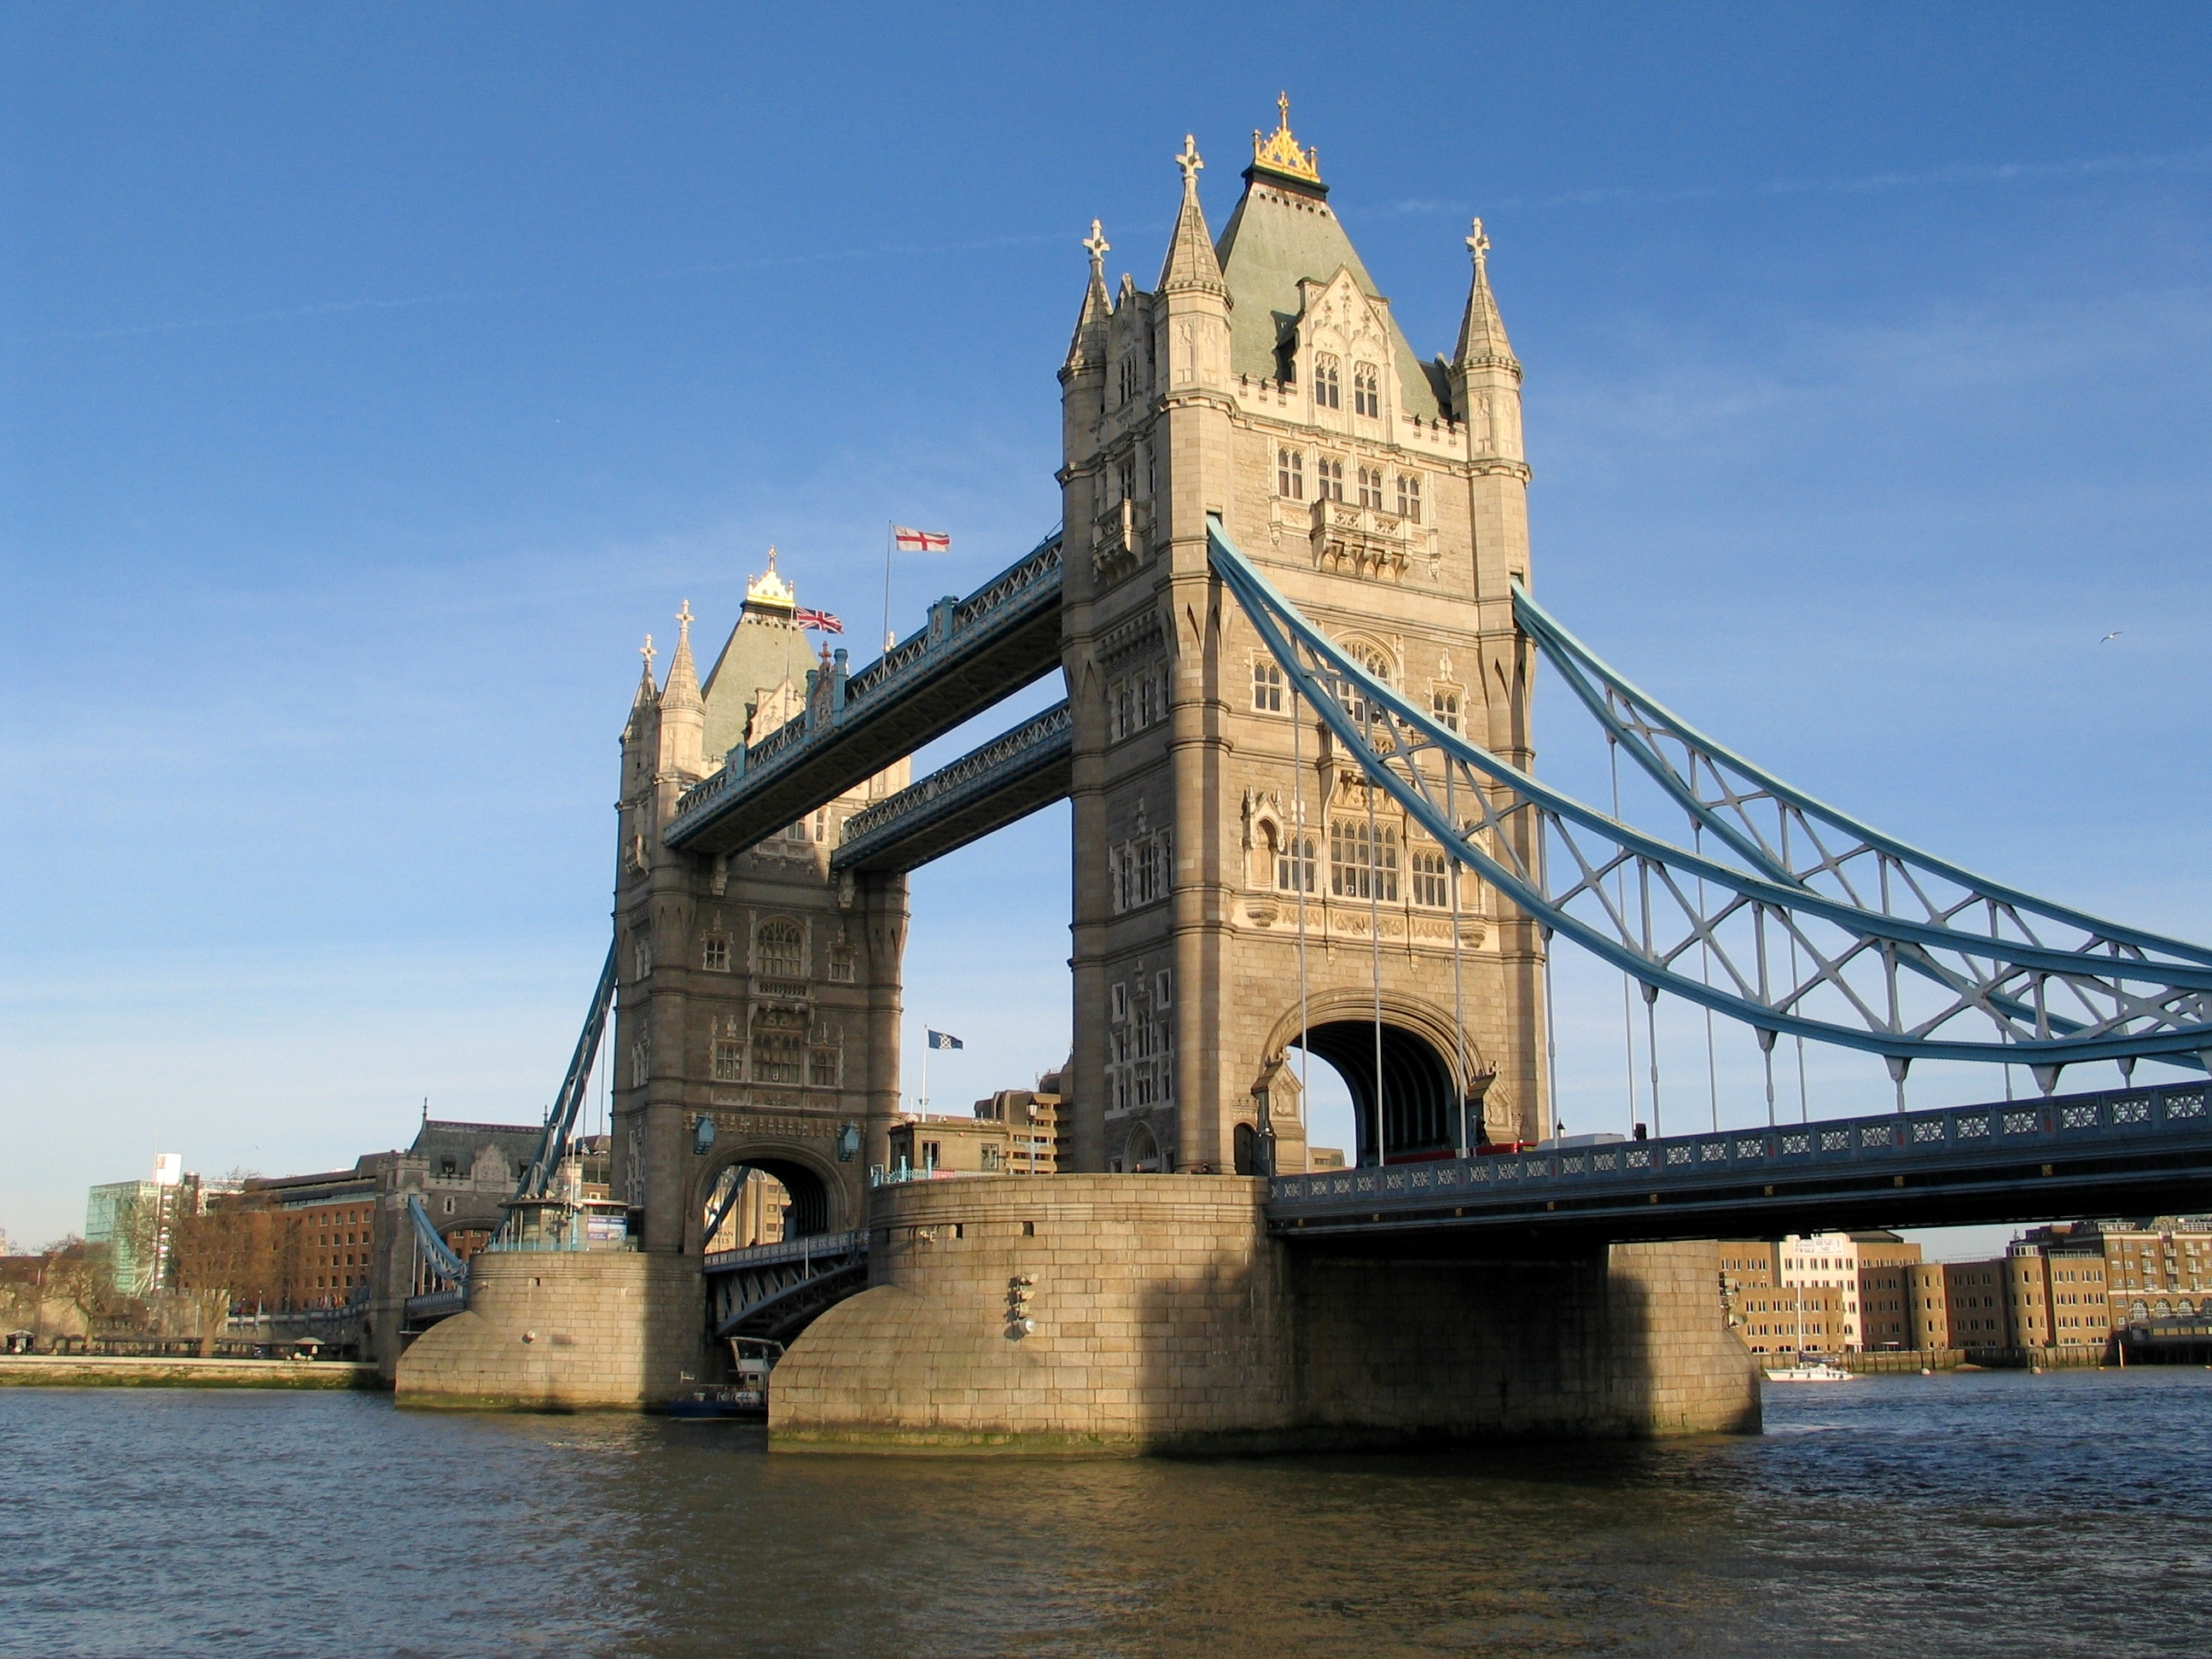 Towerbridge in London